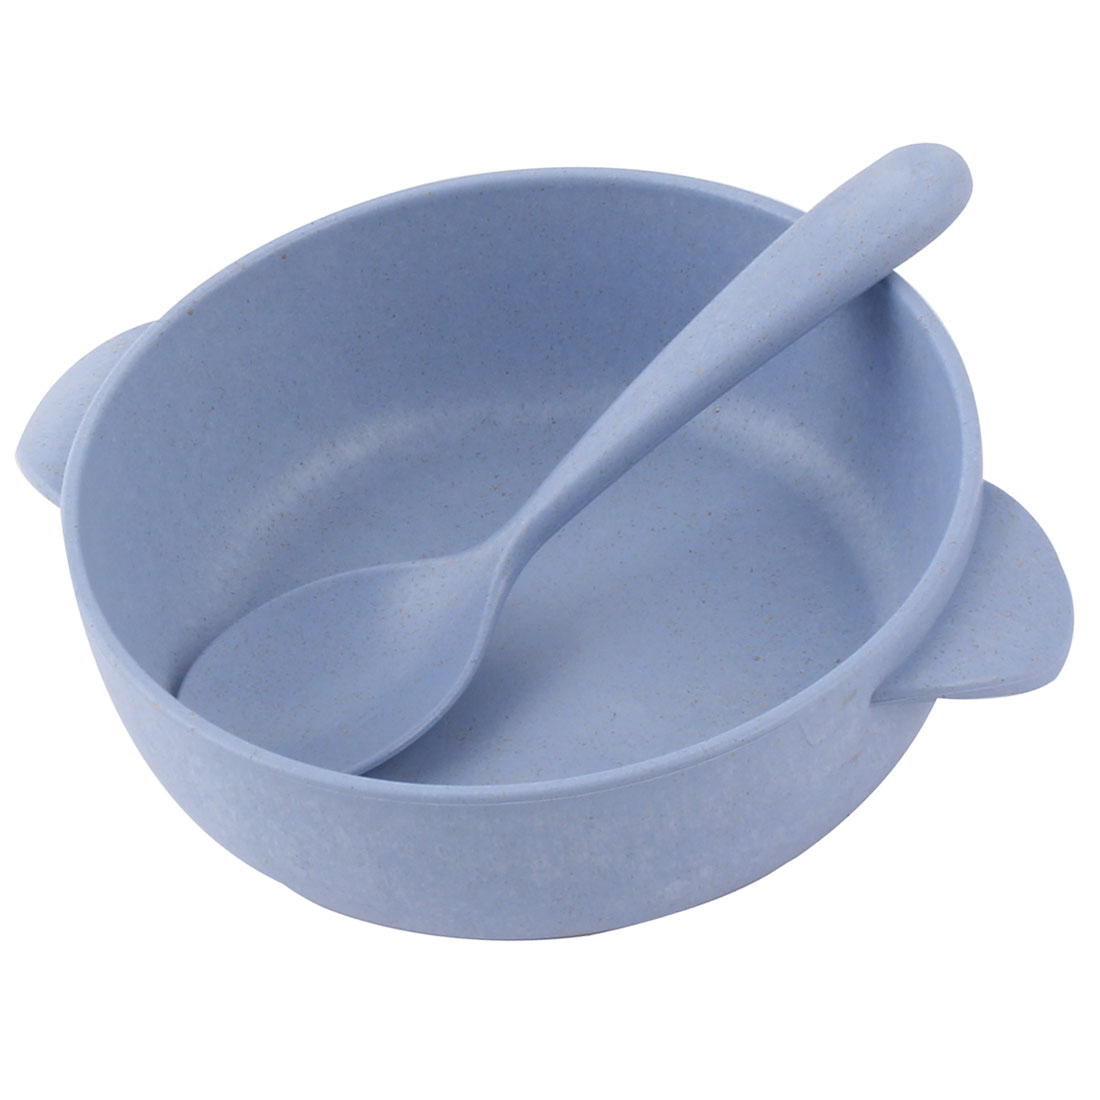 Household Tableware Plastic Round Shaped Food Container Bowl Spoon Light Blue